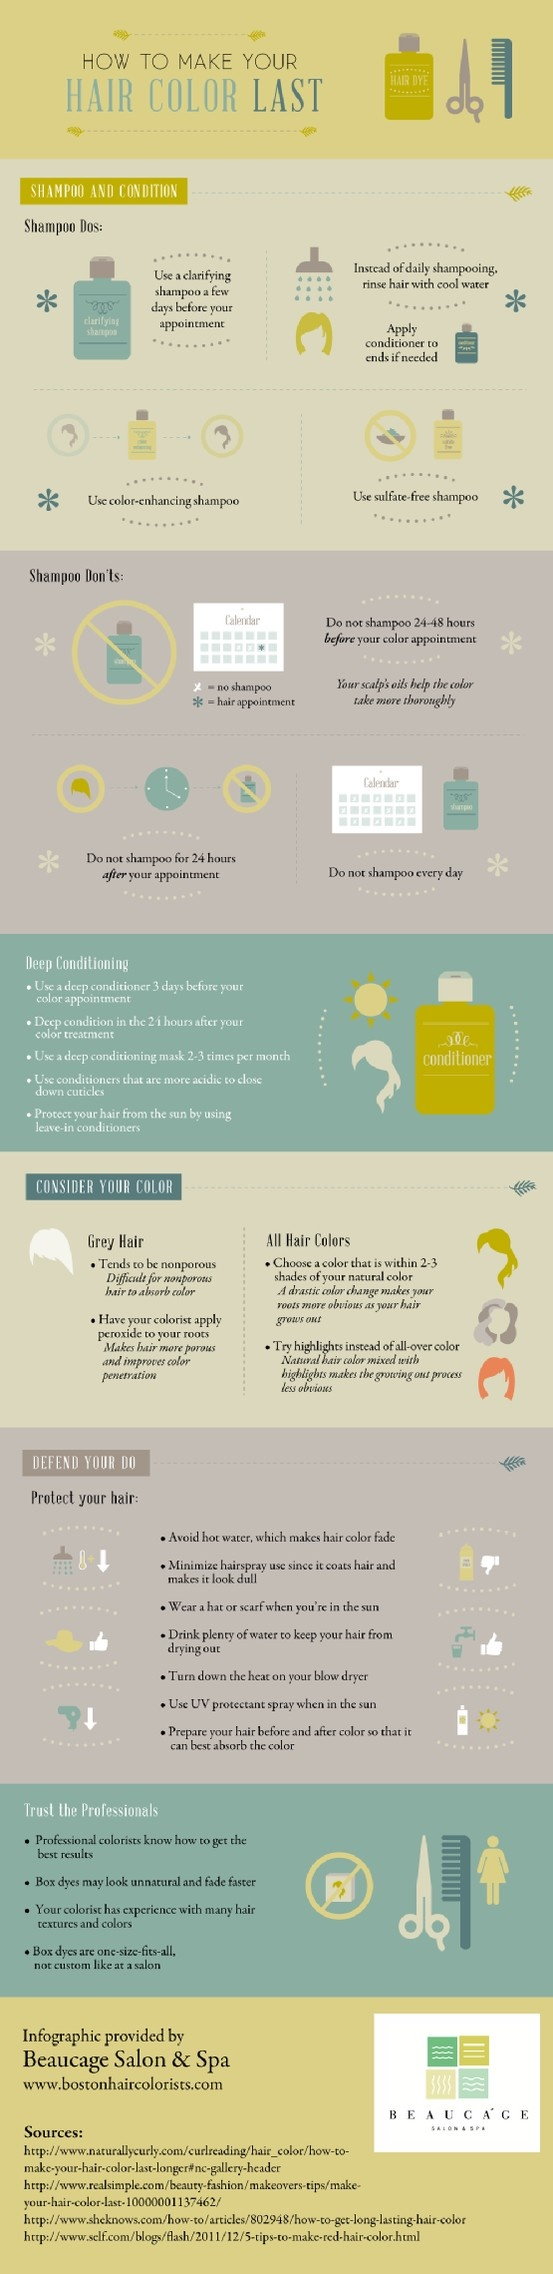 Are you considering coloring your hair at home? Unfortunately, box products are a one-size-fits-all venture and can make your hair look unnatural or fade fast. Learn about the benefits of trusting a professional hair colorist by reading this infographic.